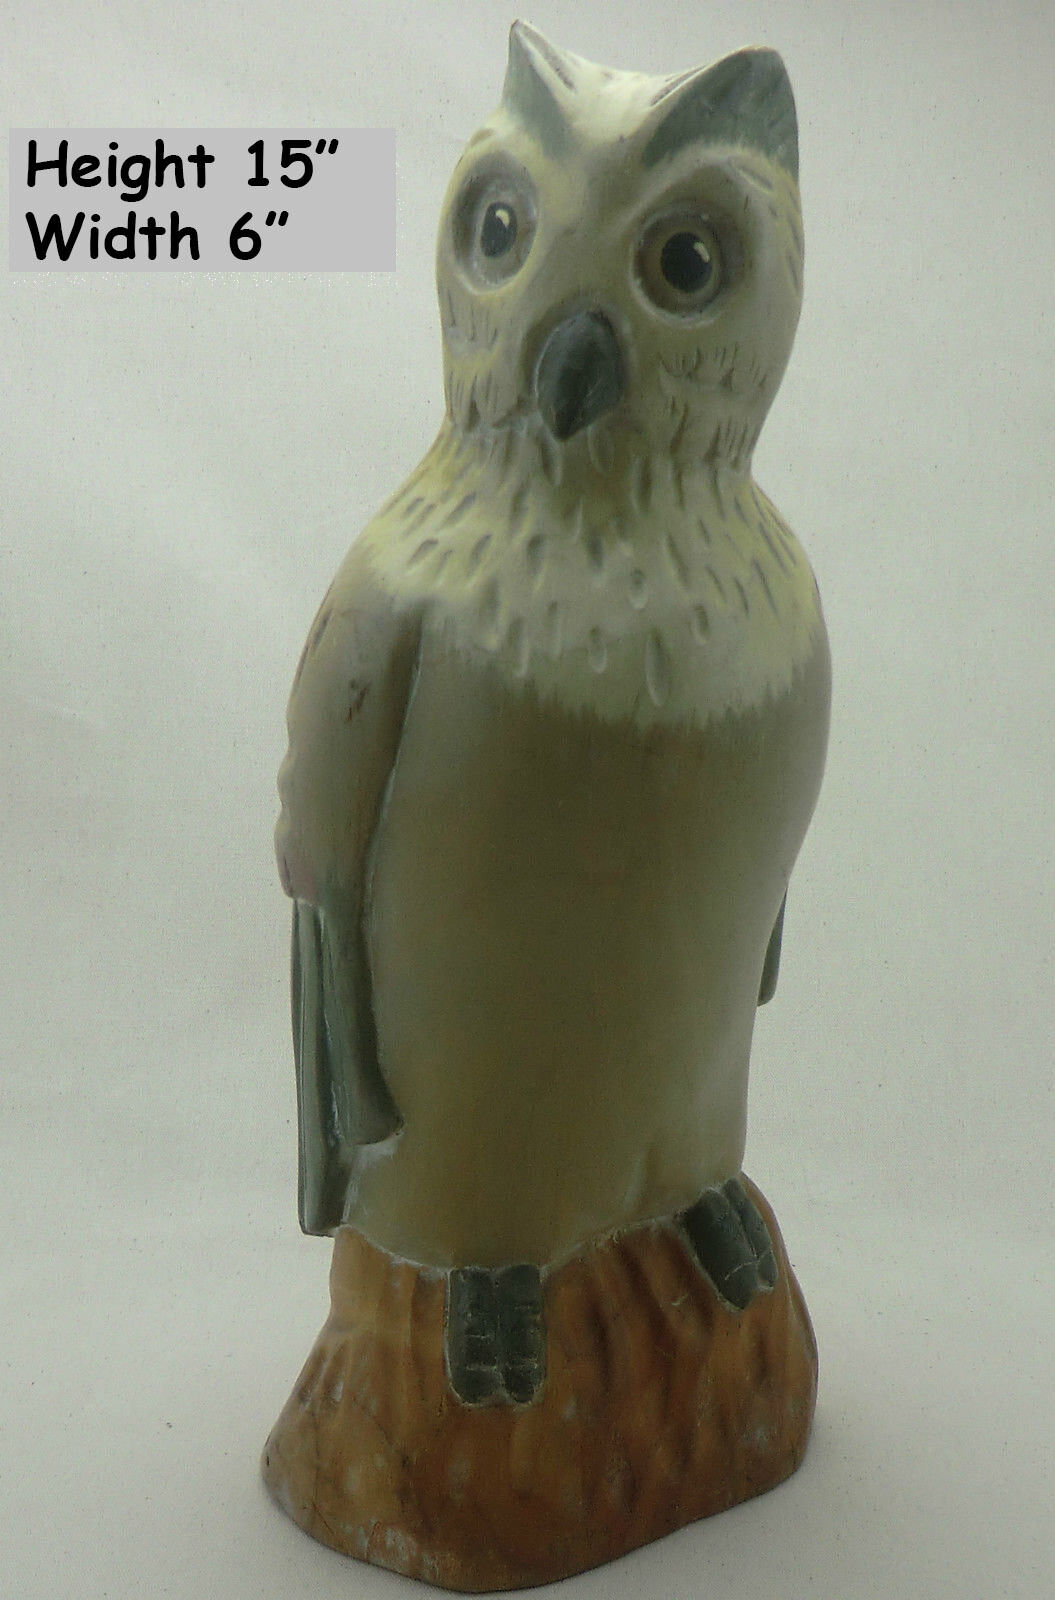 ASTONISHING WOODEN OWL, HAND CRAFTED IN COSTA RICA 15 x6  KILN DRIED ,EXDISPLAY